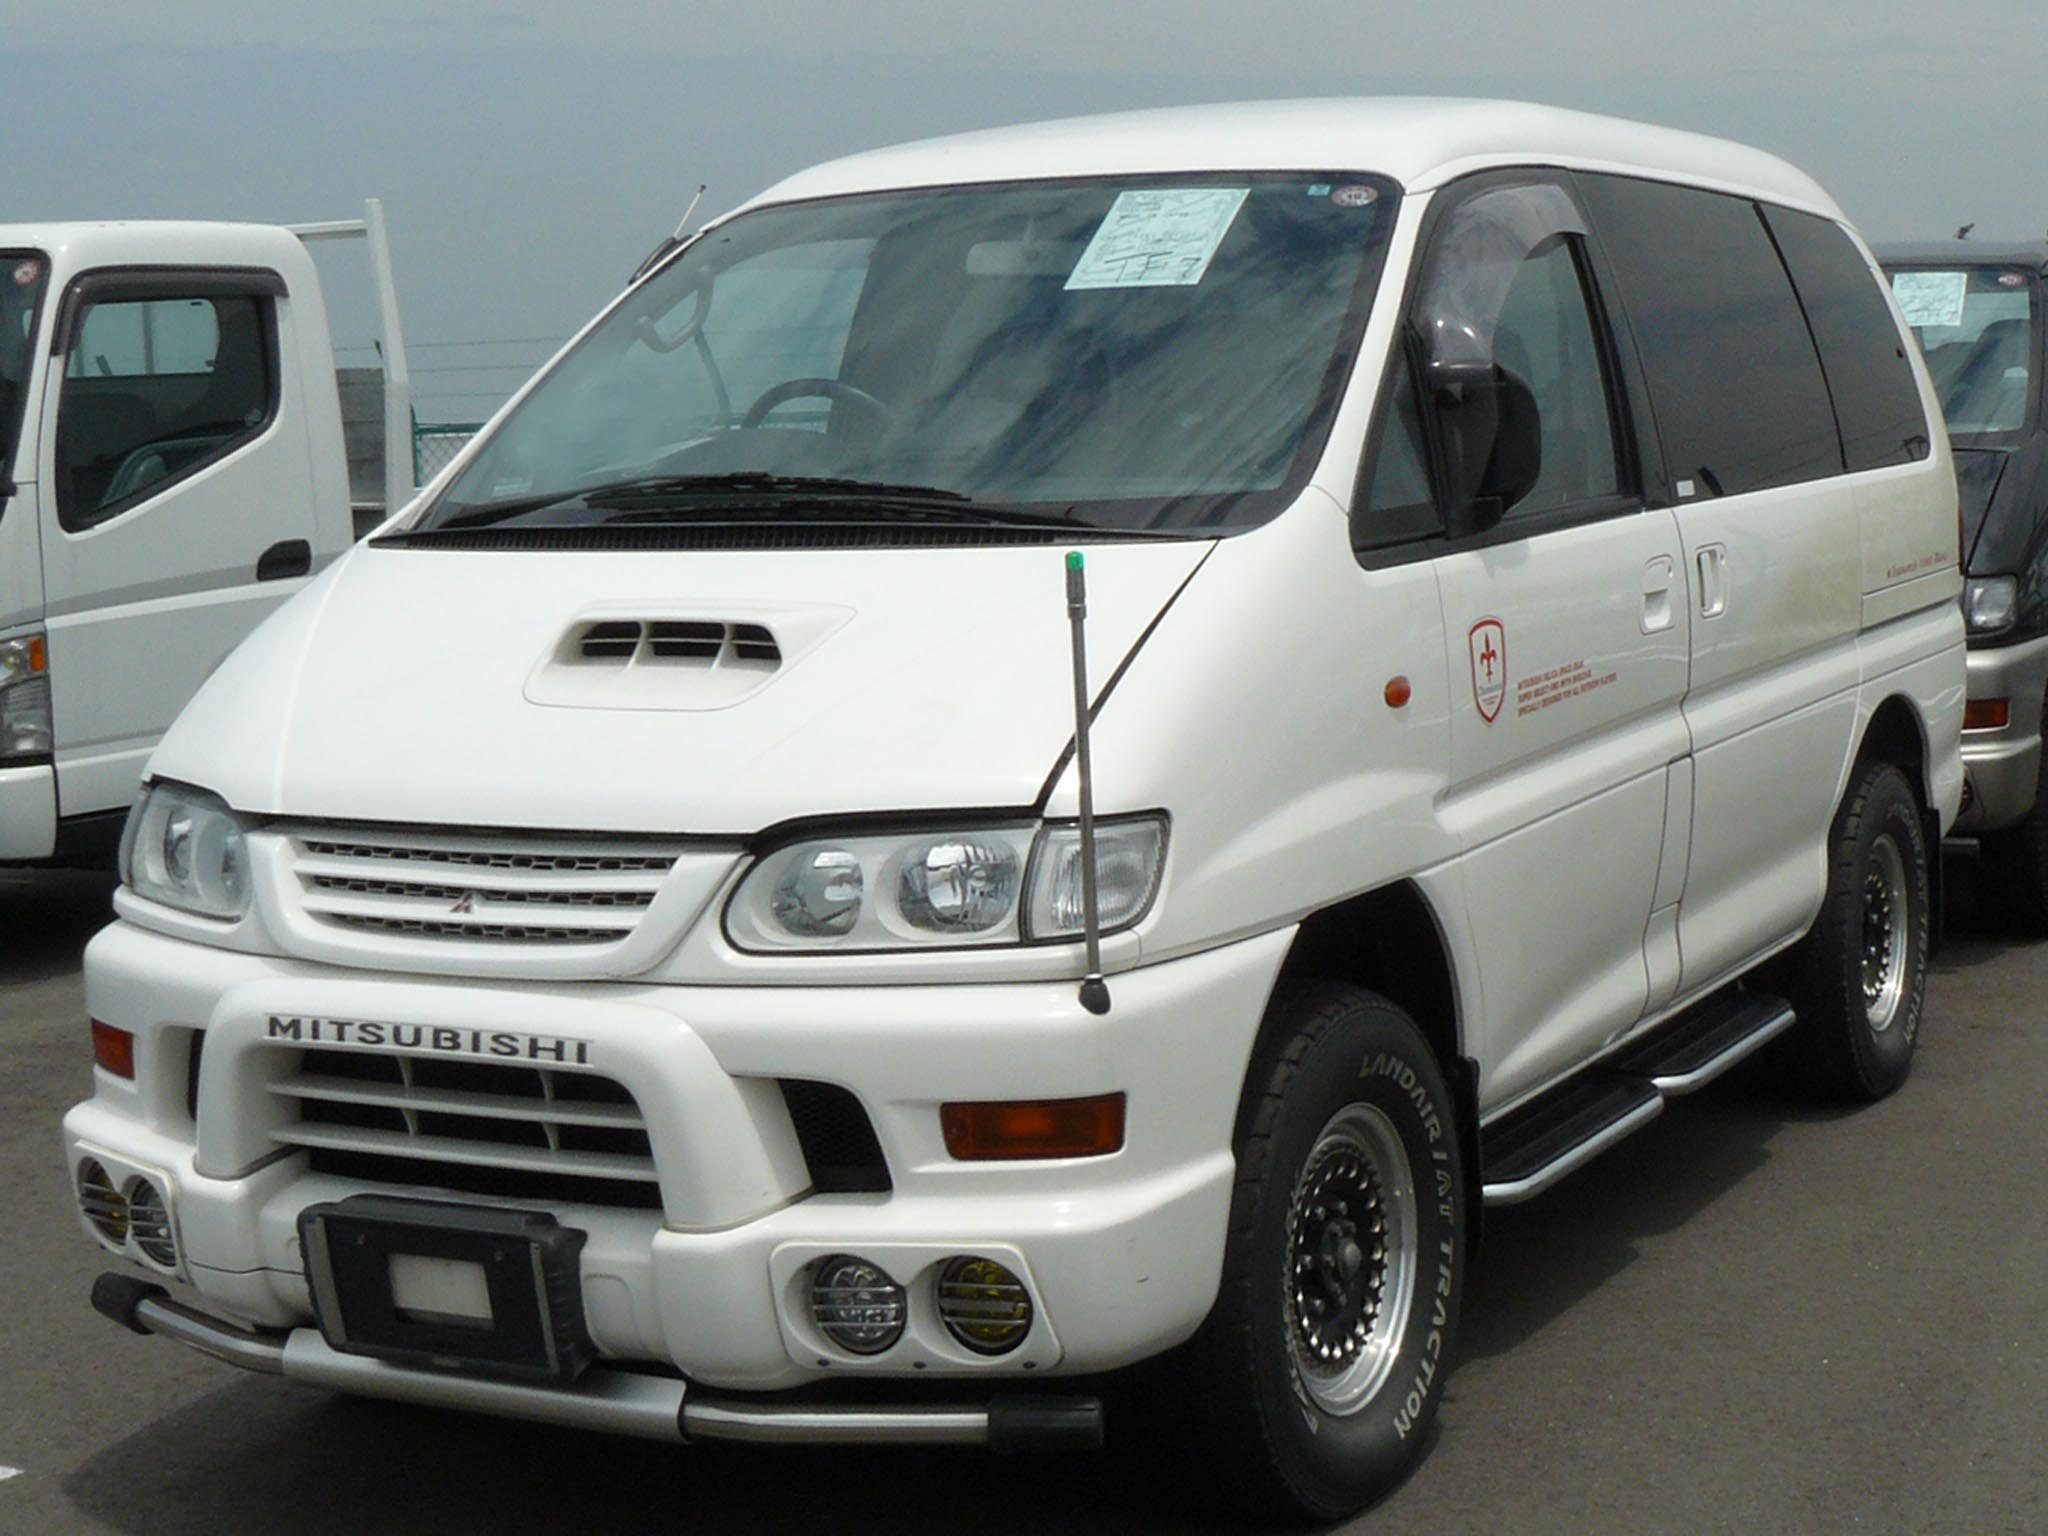 mitsubishi space gear images #9